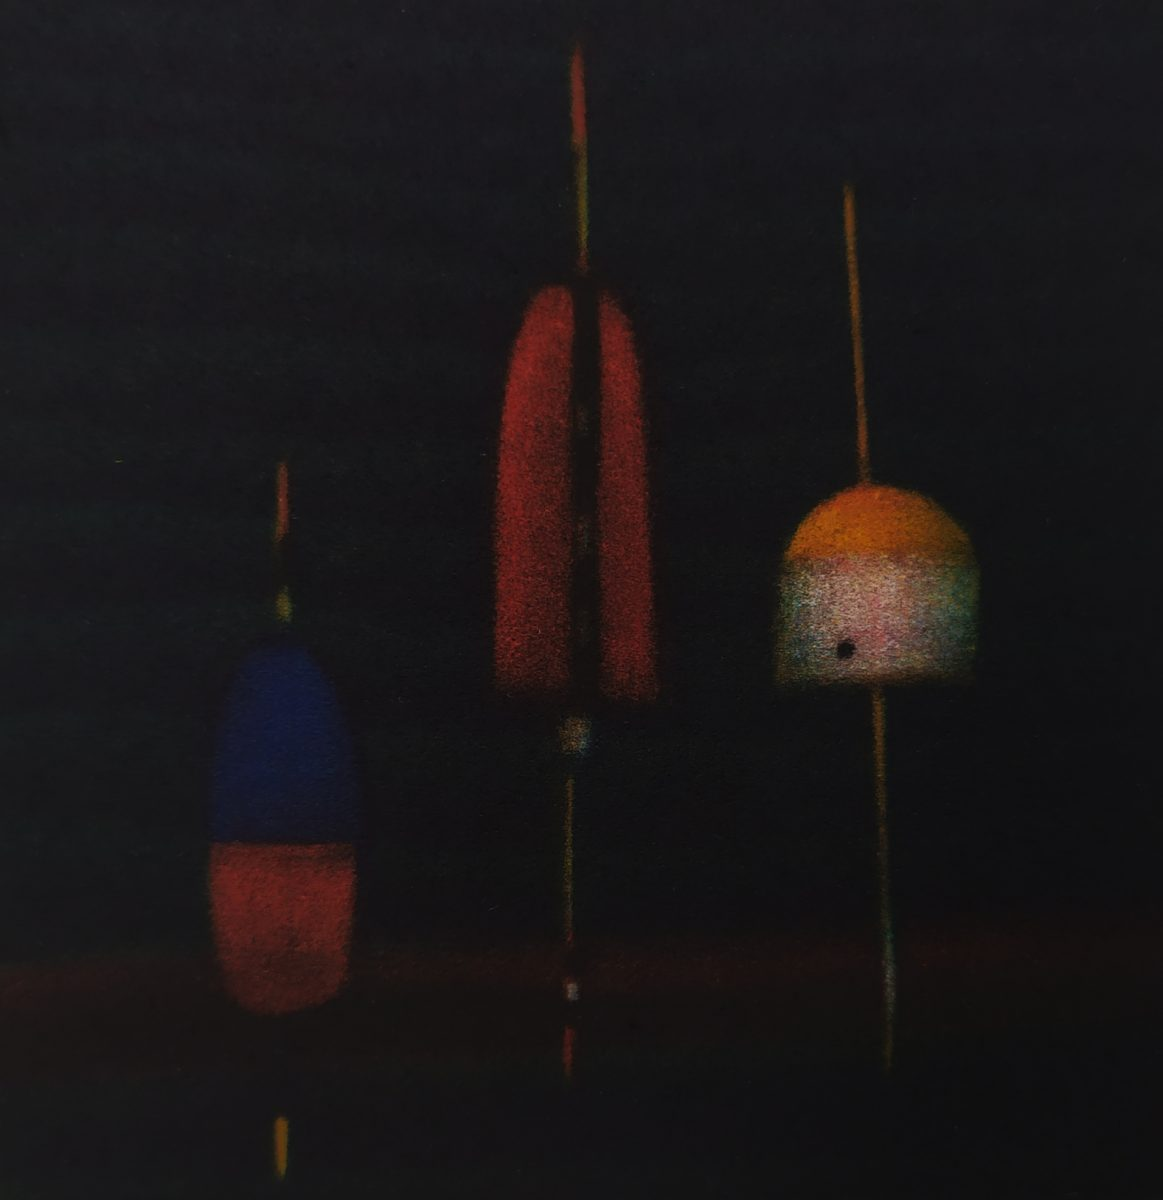 James McCreary, Waves and floats